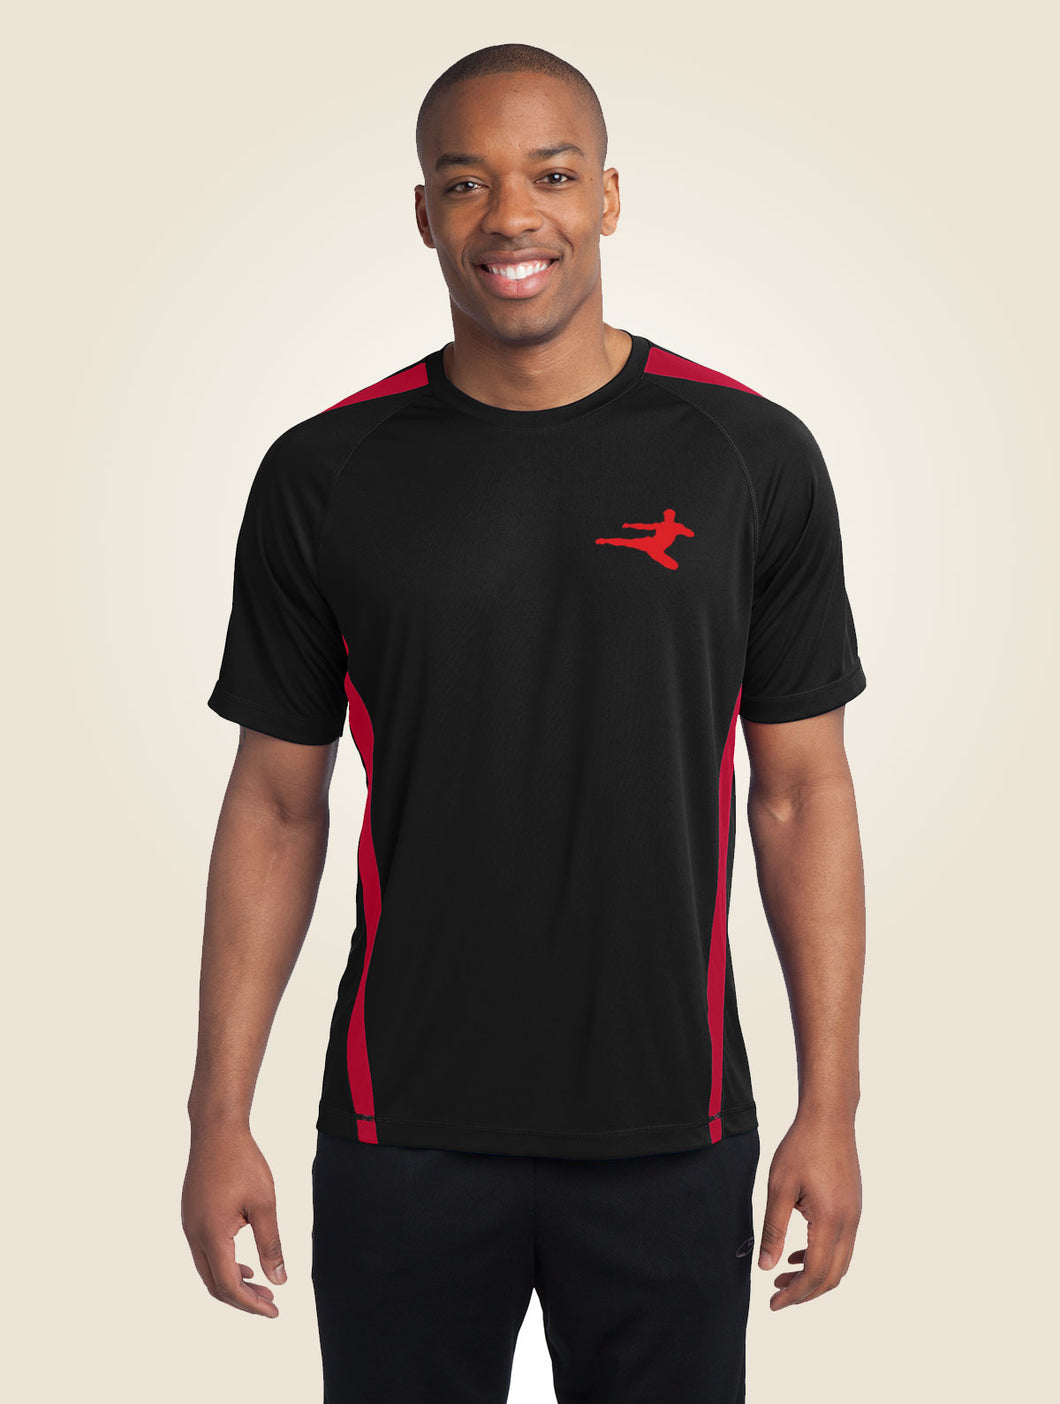 Kickboxer Silhouette Performance workout Shirt